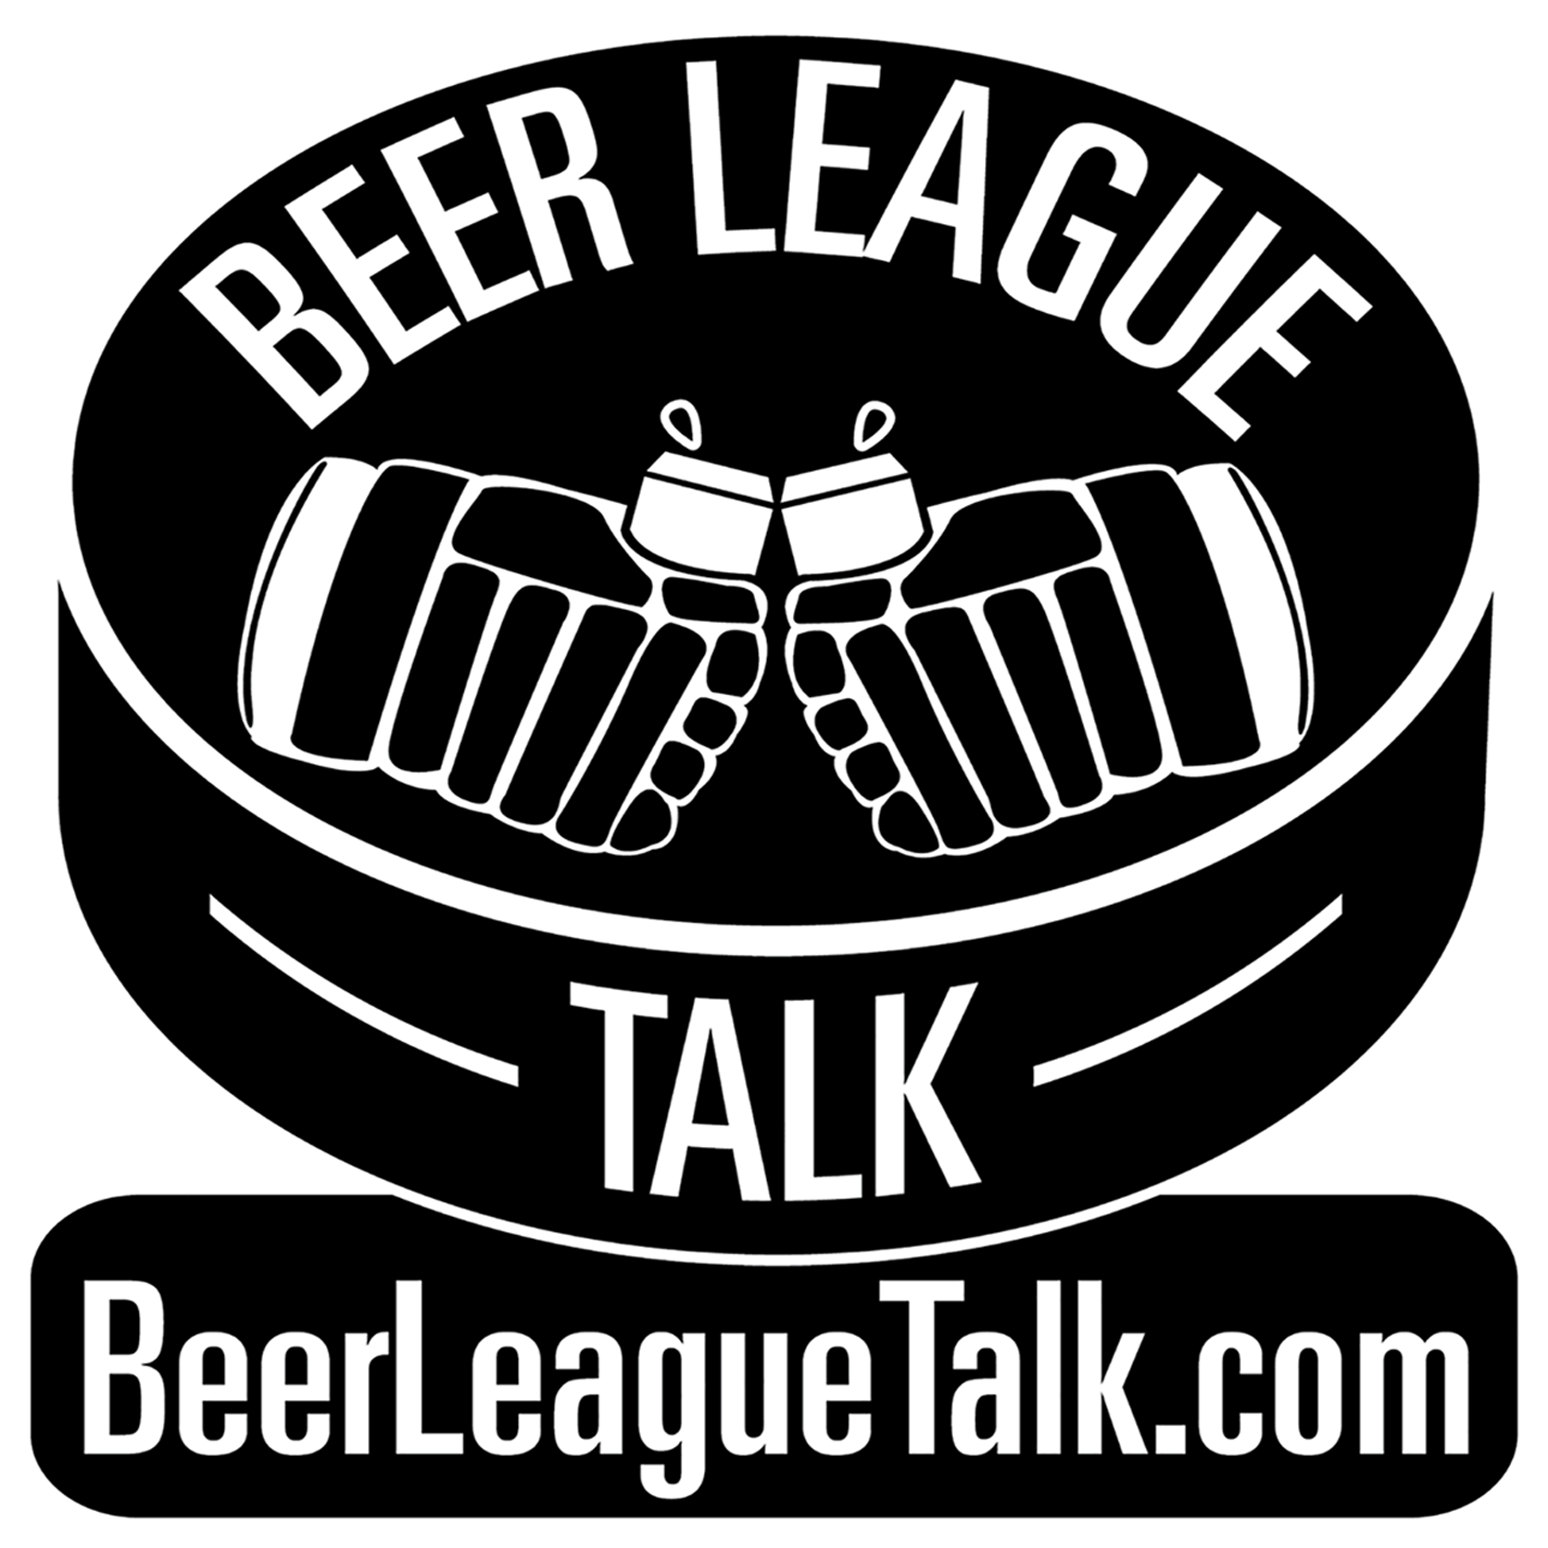 Beer League Talk